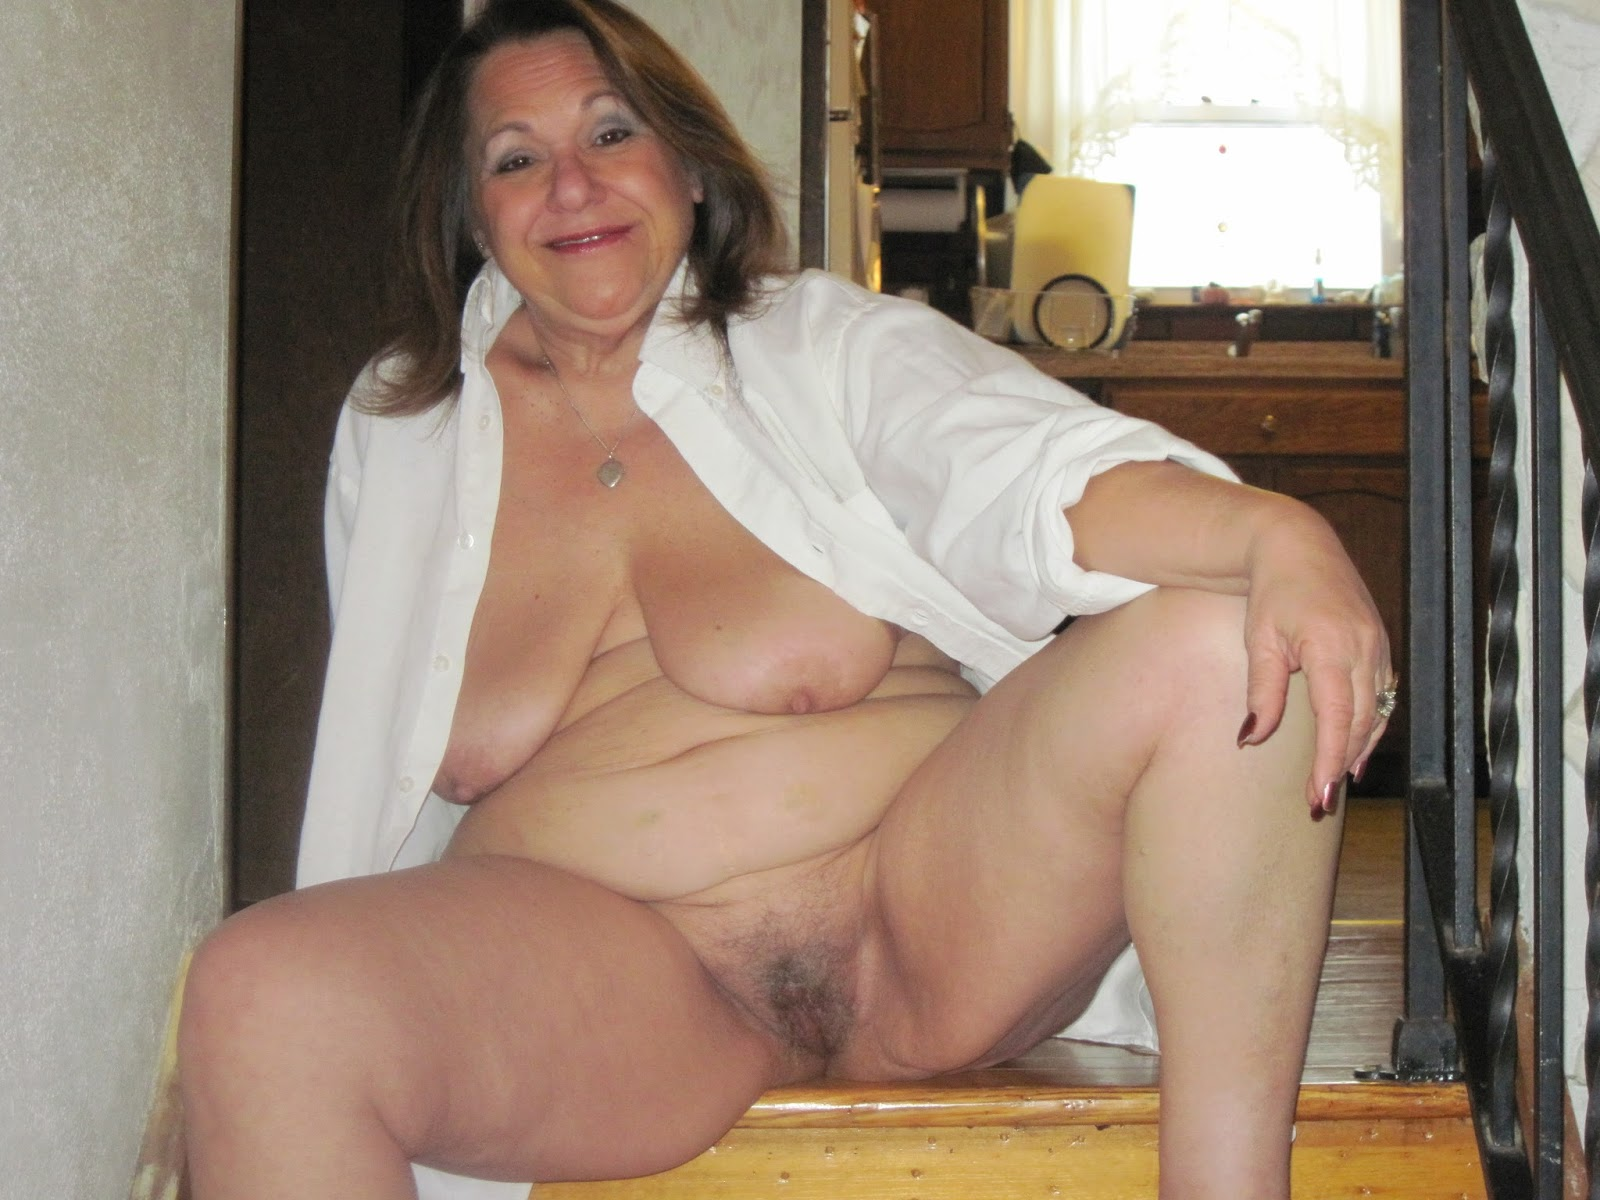 Mature women with spread naked legs